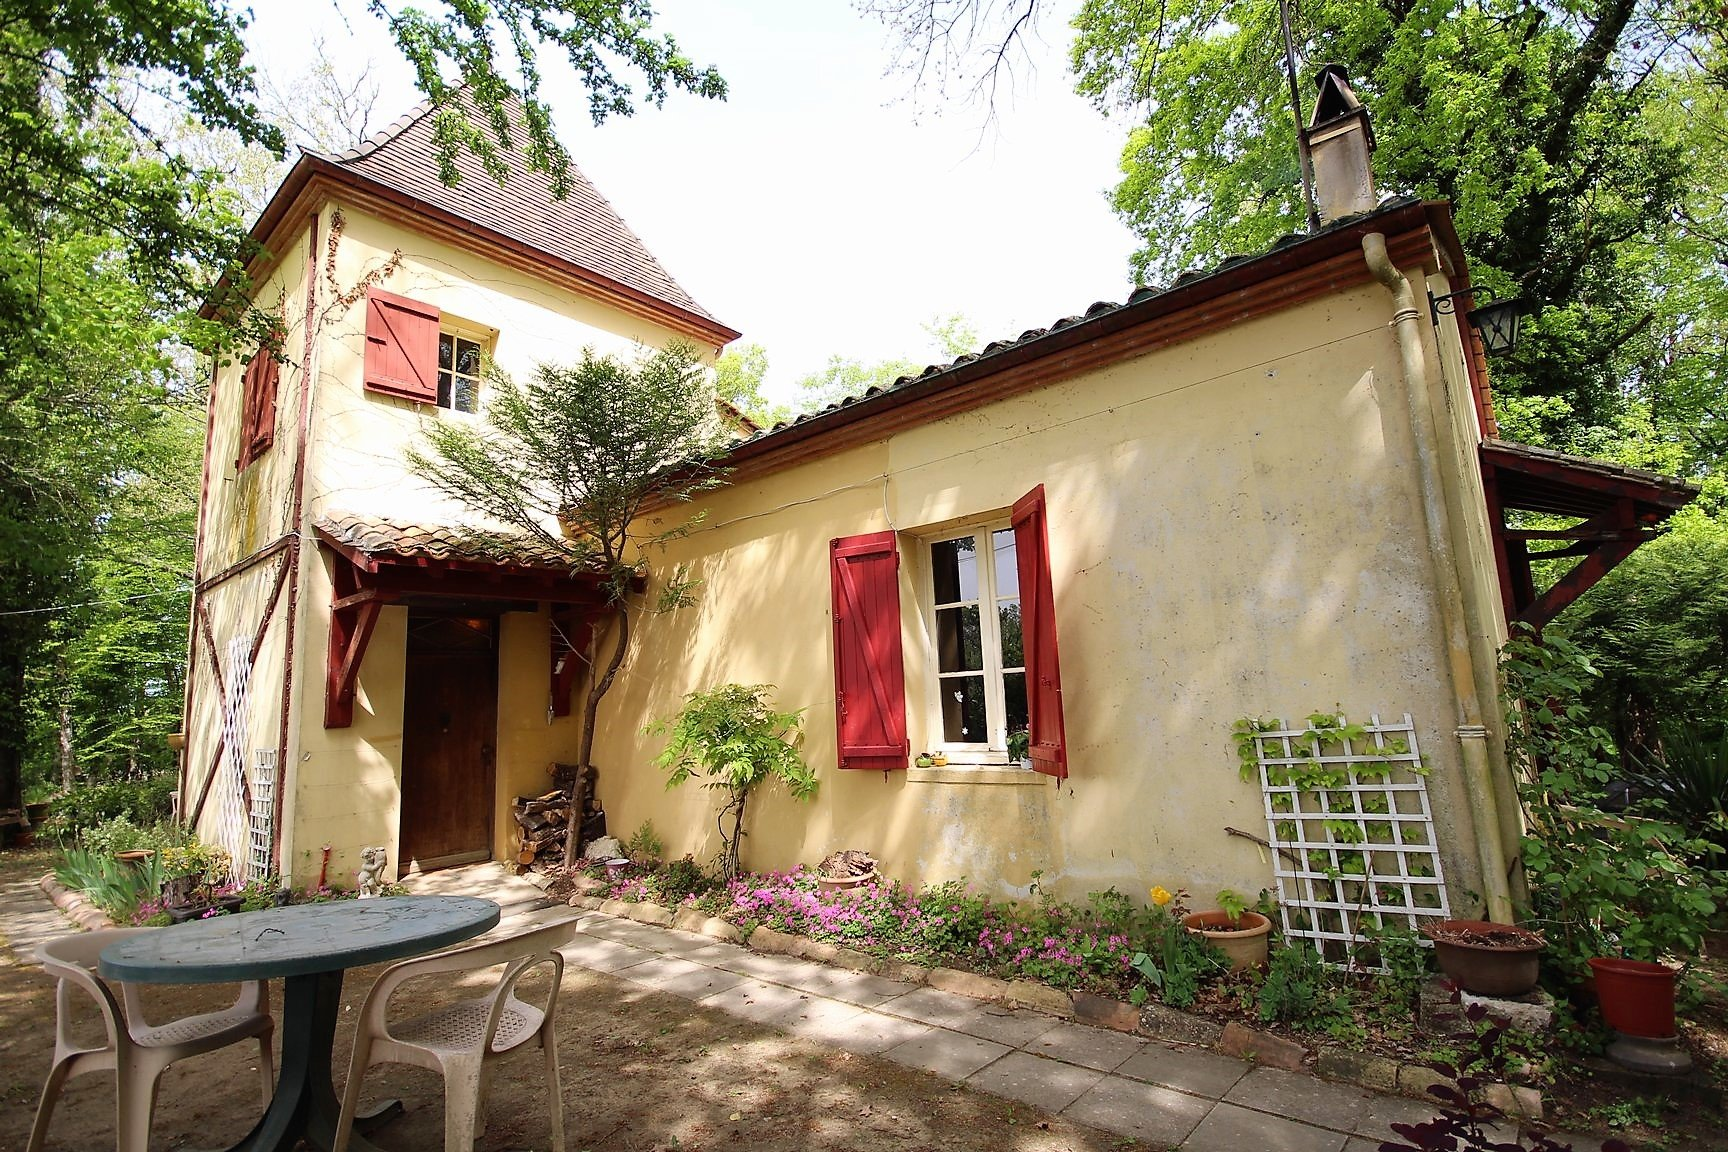 Fabulous Opportunity to have a 3 bedroom house with views and woodlands, only 10 minutes from Eymet